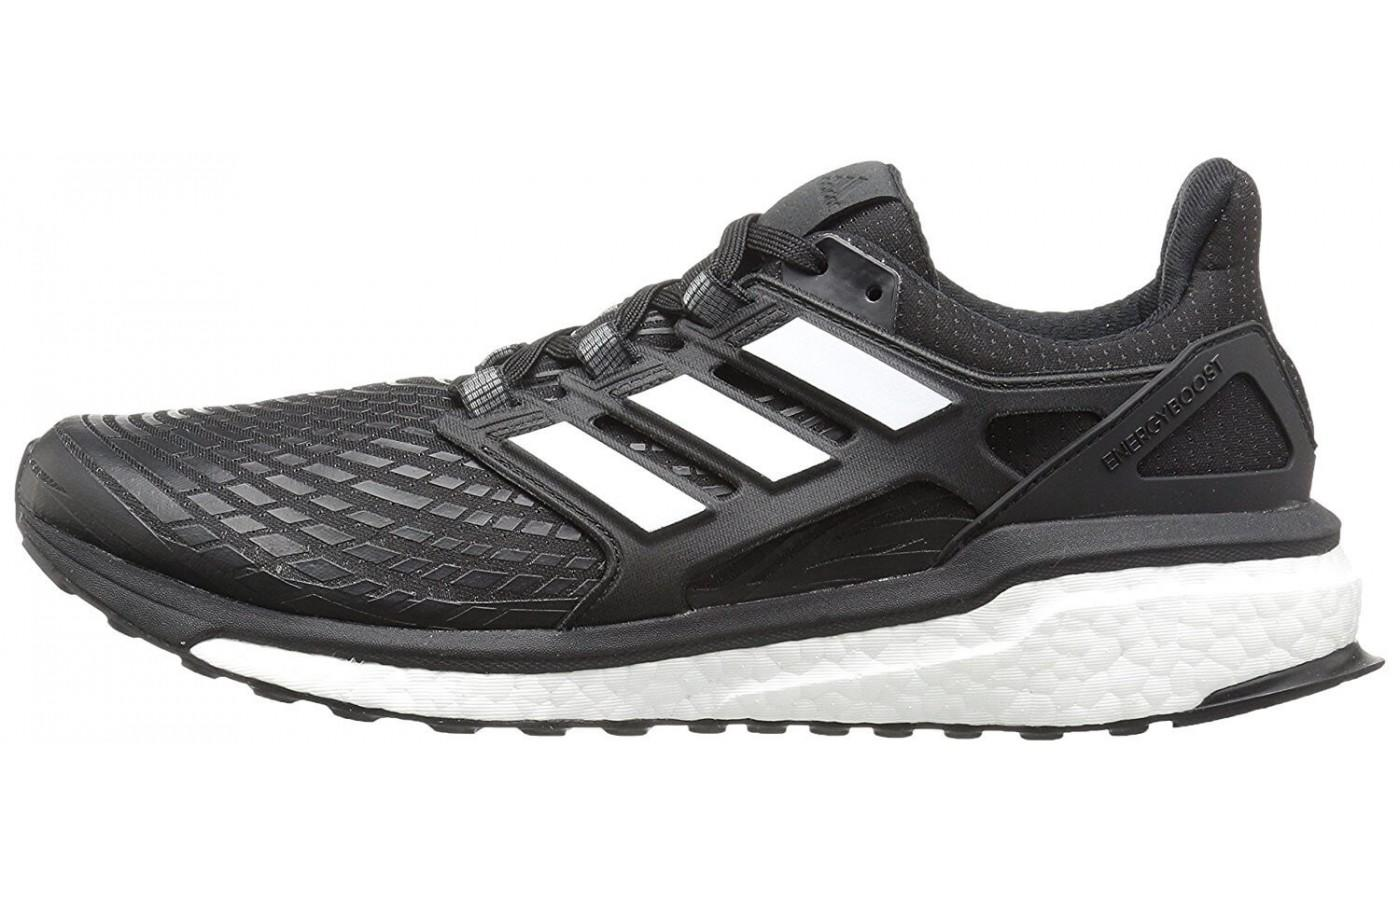 the Adidas Energy Boost has fantastic energy return